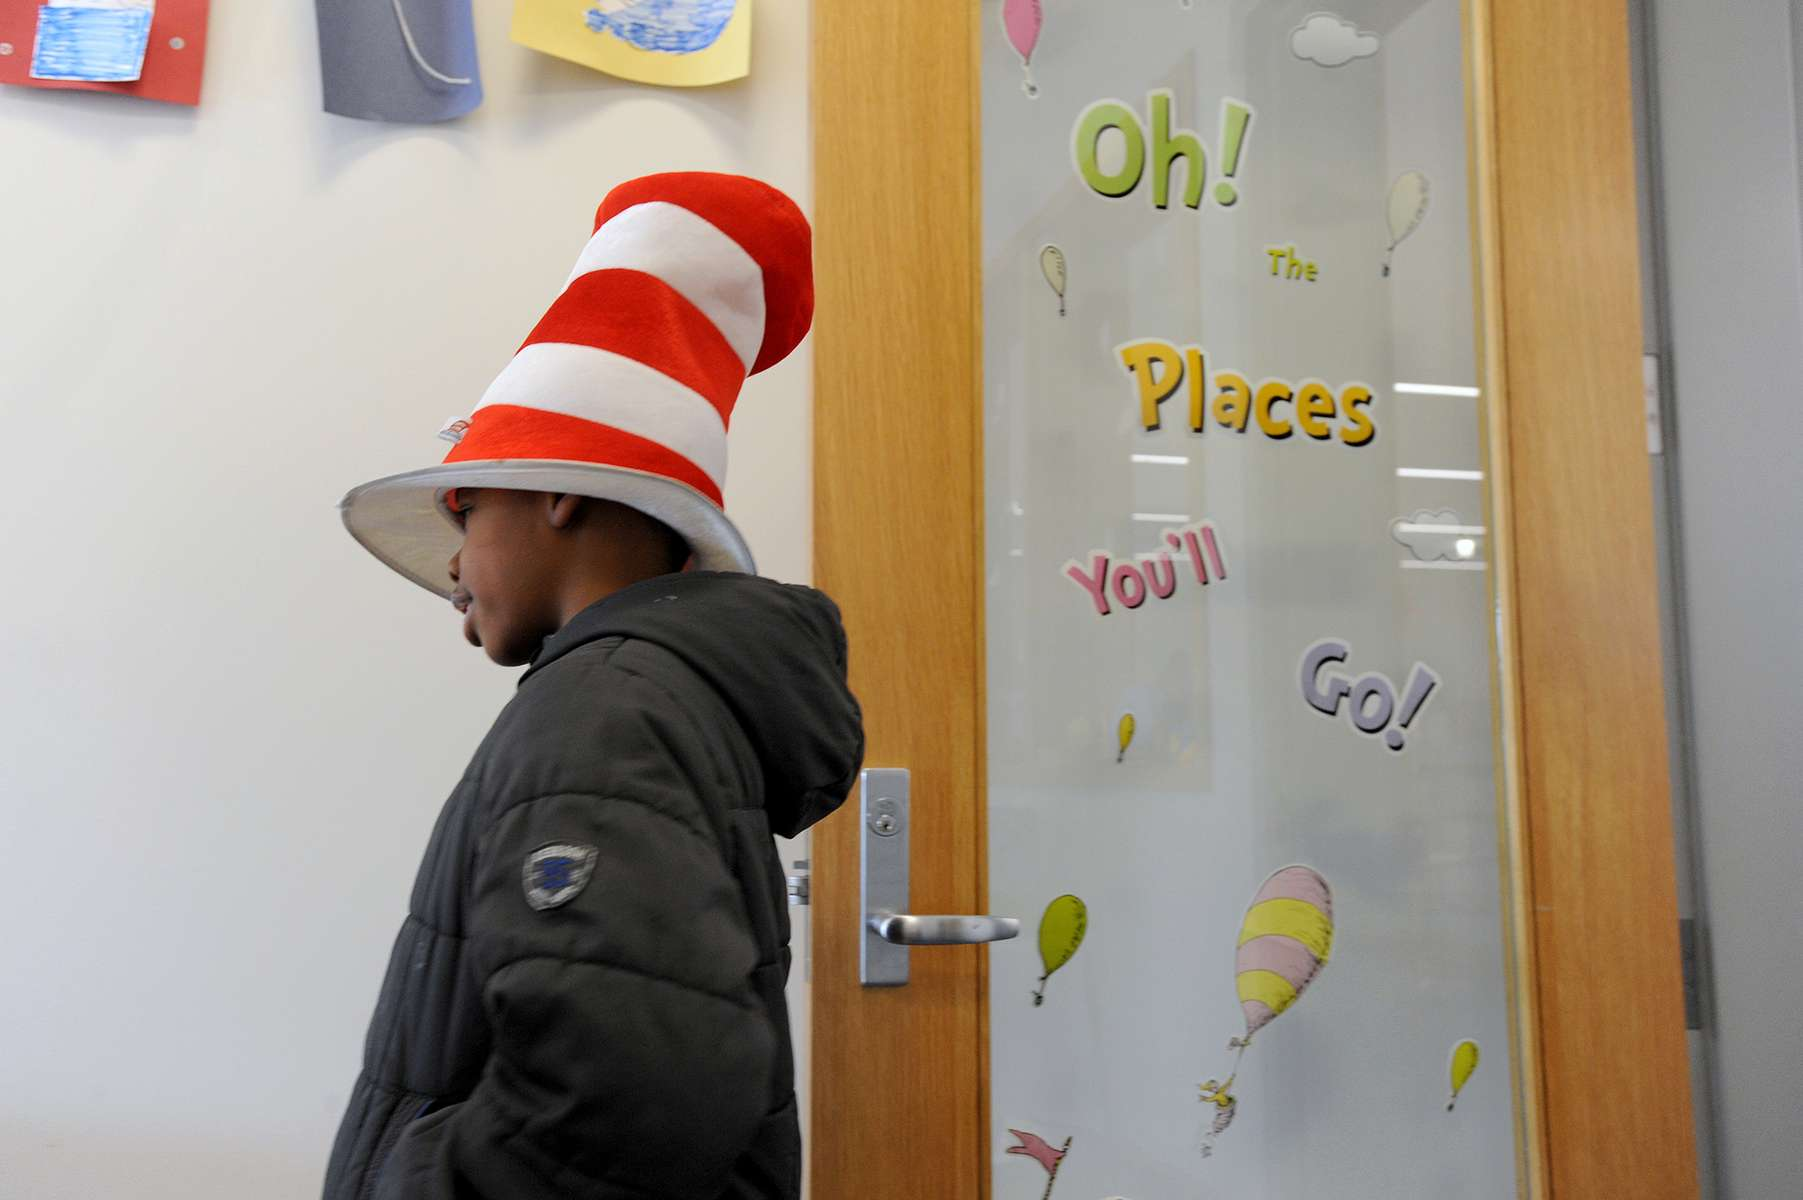 3/2/20-- FRAMINGHAM--  Abdul Sansio, 8, dressed appropriately for Dr. Seuss Day Crafts and Book Bingo at the McAuliffe Branch of the Framingham Public Library Monday, celebrating National Read Across America Day and Dr. Seuss's birthday.  [Daily News and Wicked Local Staff Photo/Art Illman]